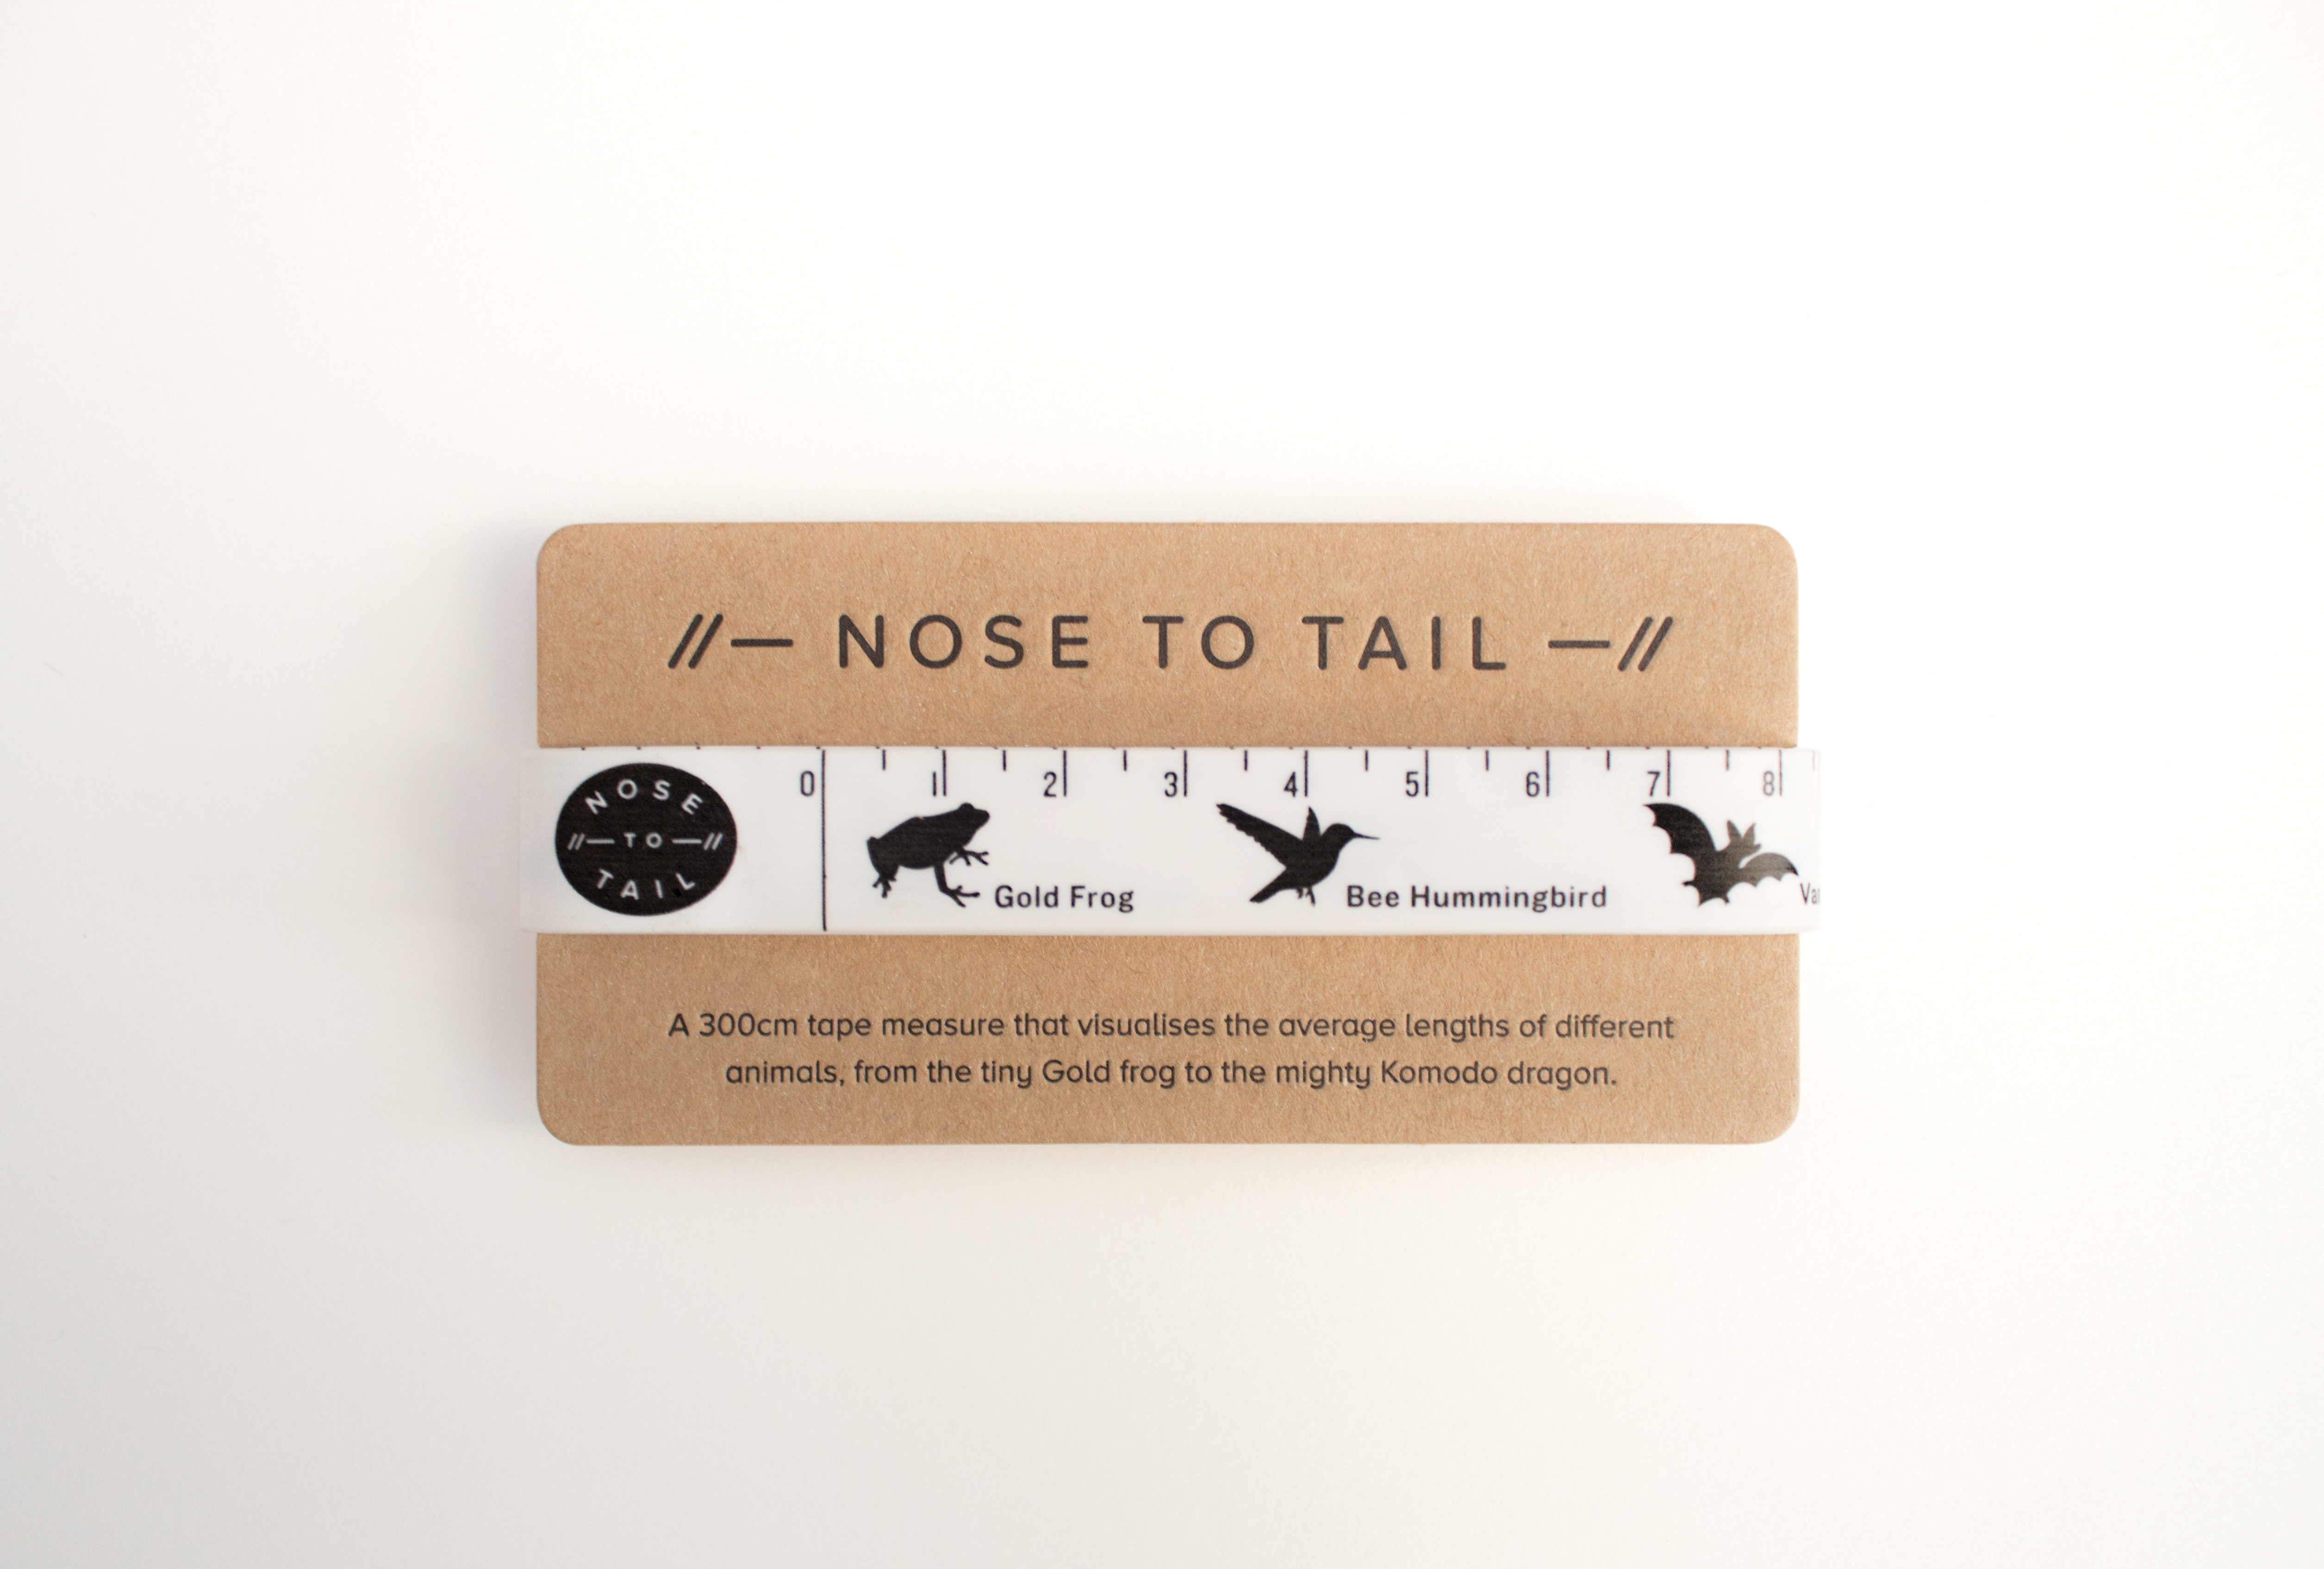 Nose to Tail